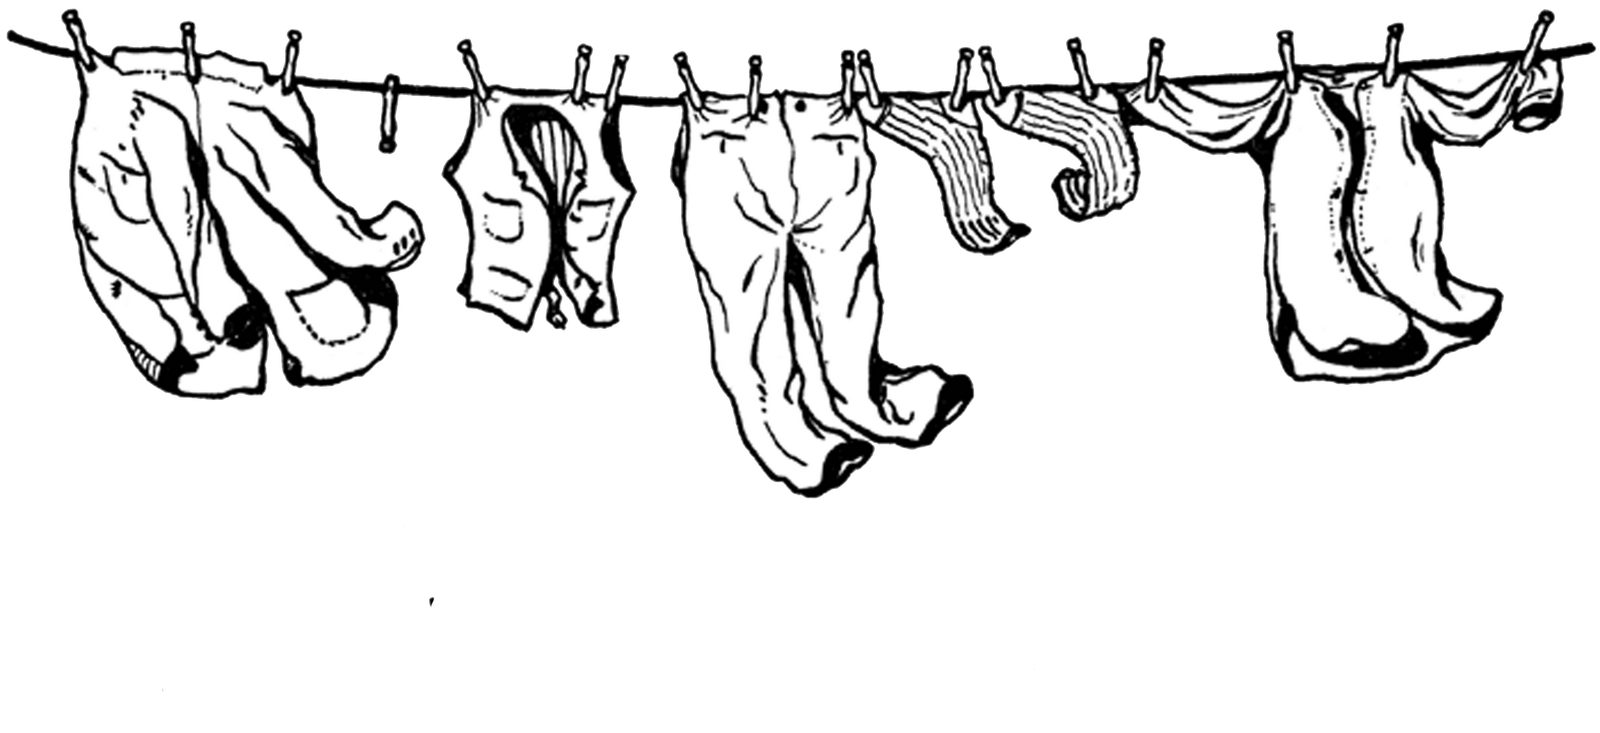 Hanging clothes clipart png. Clothesline and assorted black